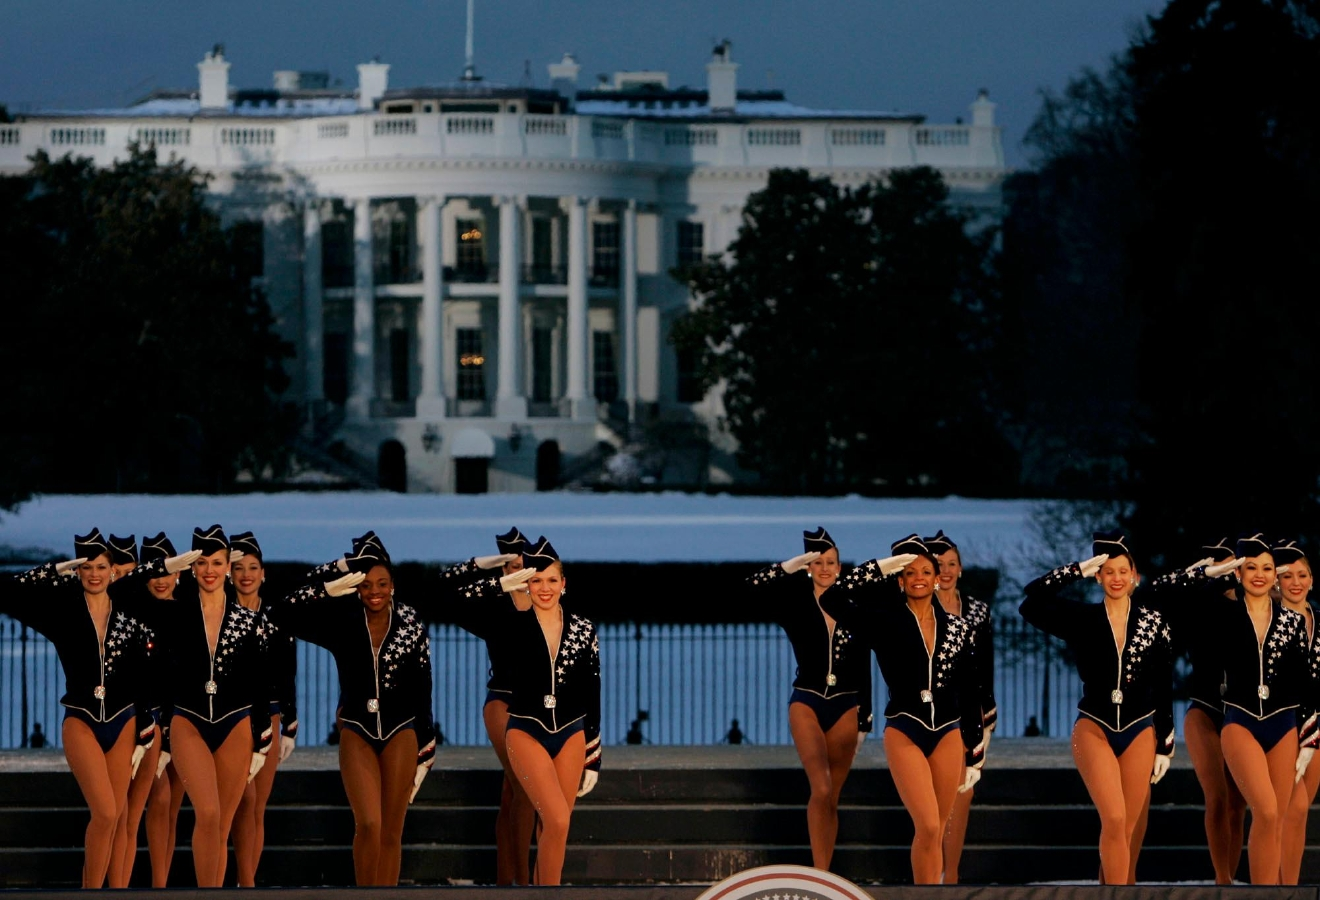 FILE - In this Wednesday, Jan. 19, 2005, file photo, the Rockettes perform during the Celebration of Freedom Concert on the Ellipse, with the White House in the background in Washington. The Radio City Rockettes have been assigned to dance at President-elect Donald Trump's inauguration January 2017. (AP Photo/Chris Gardner, File)